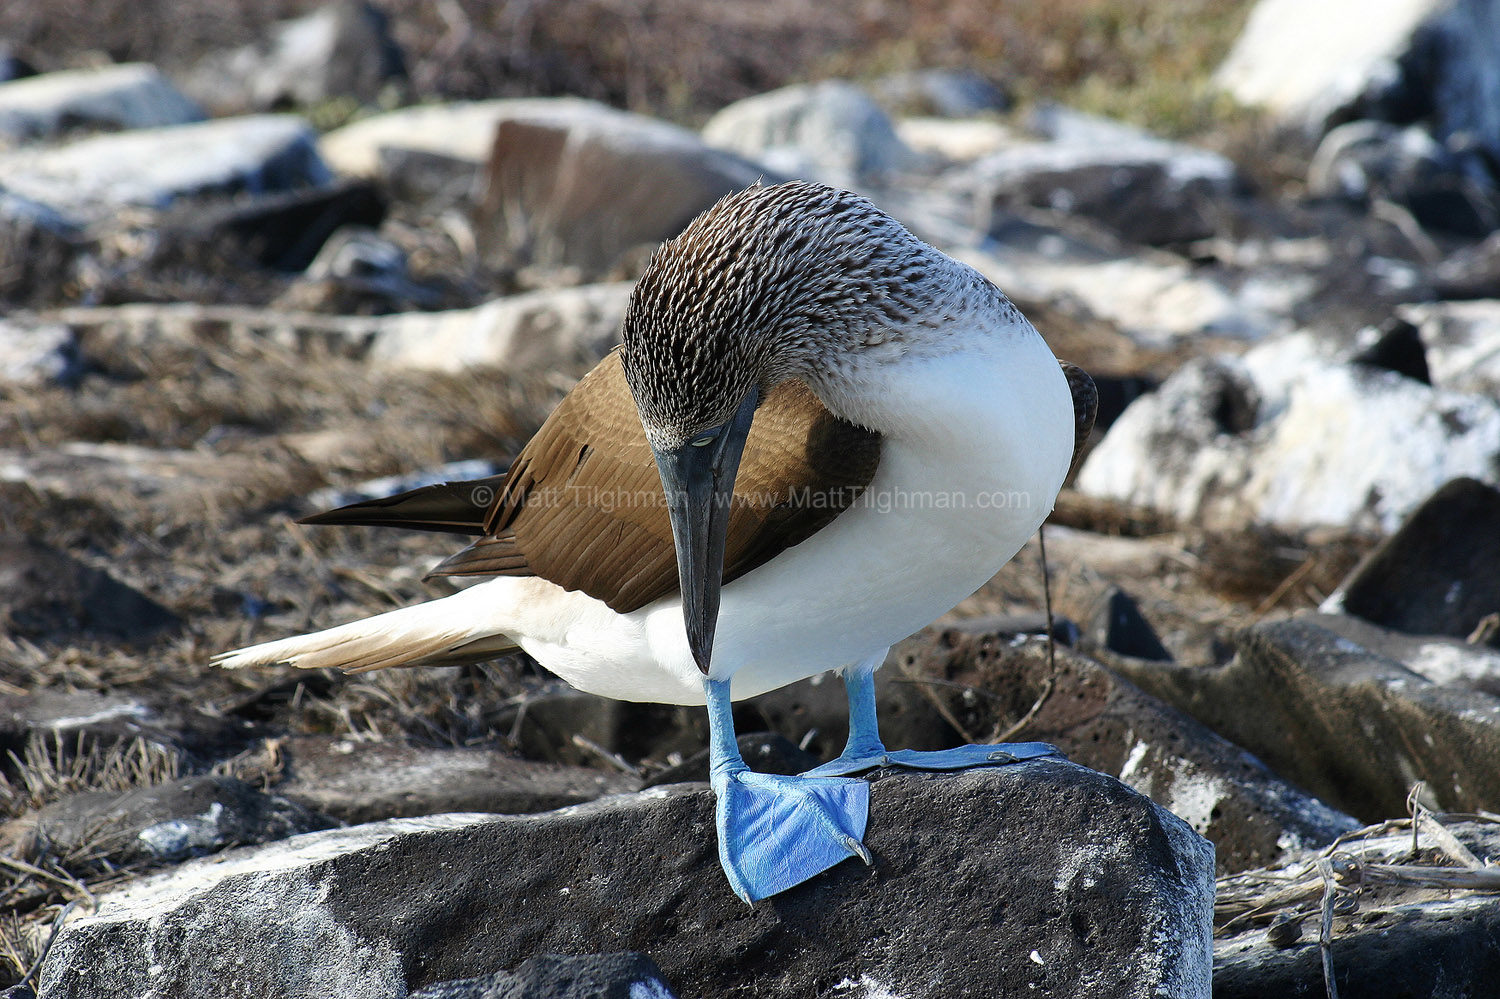 Fine art stock nature photograph of a Blue-footed booby, on the Galapagos Islands. The iconic bird checks out his blue feet - bluer attracts more mates!